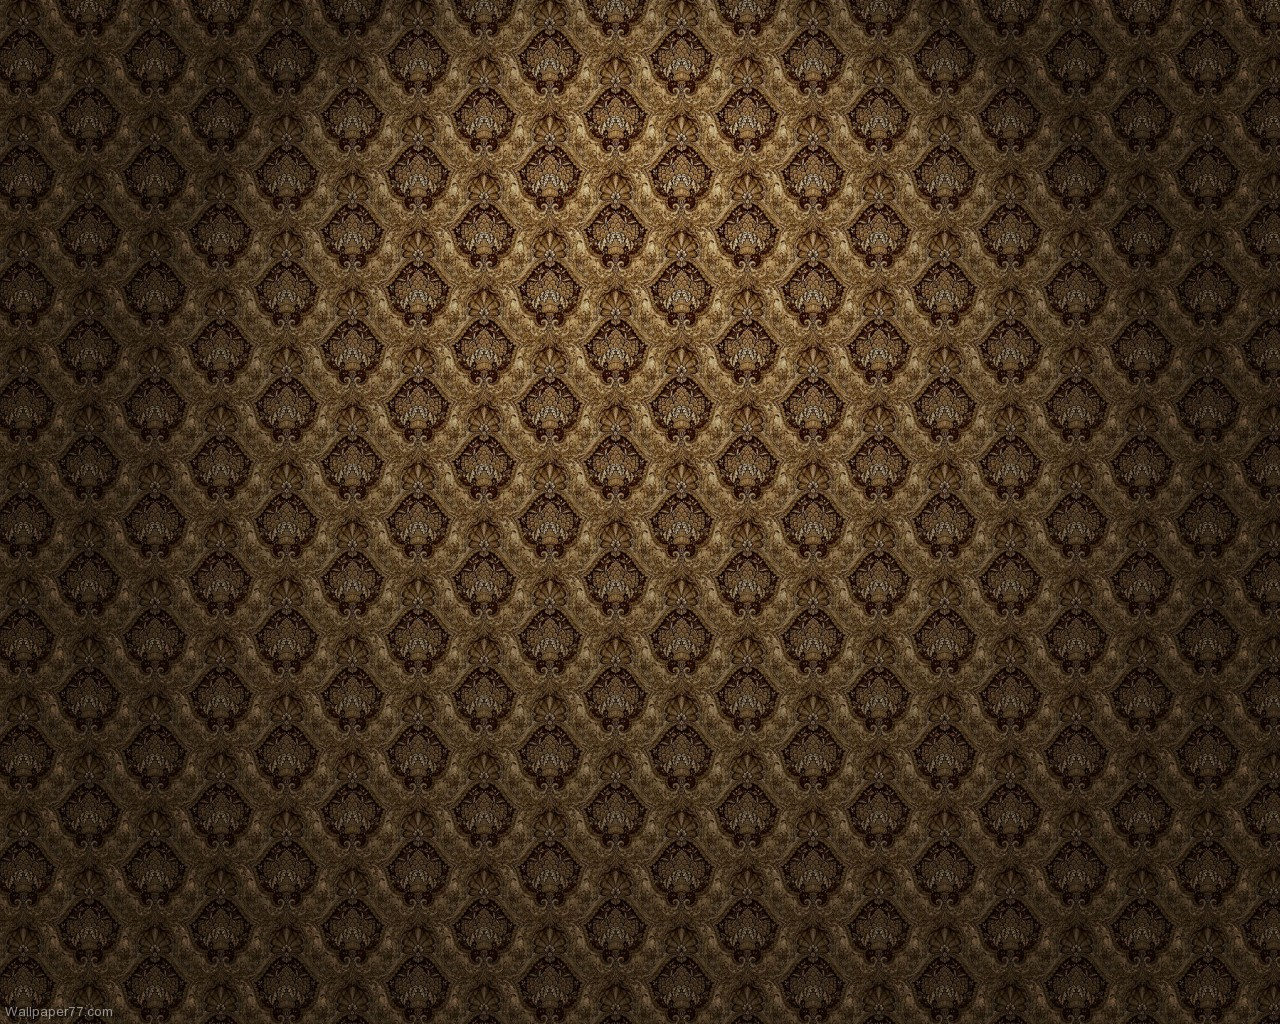 Pattern Wallpaper by Wonkajh background patterns pattern wallpapers 1280x1024